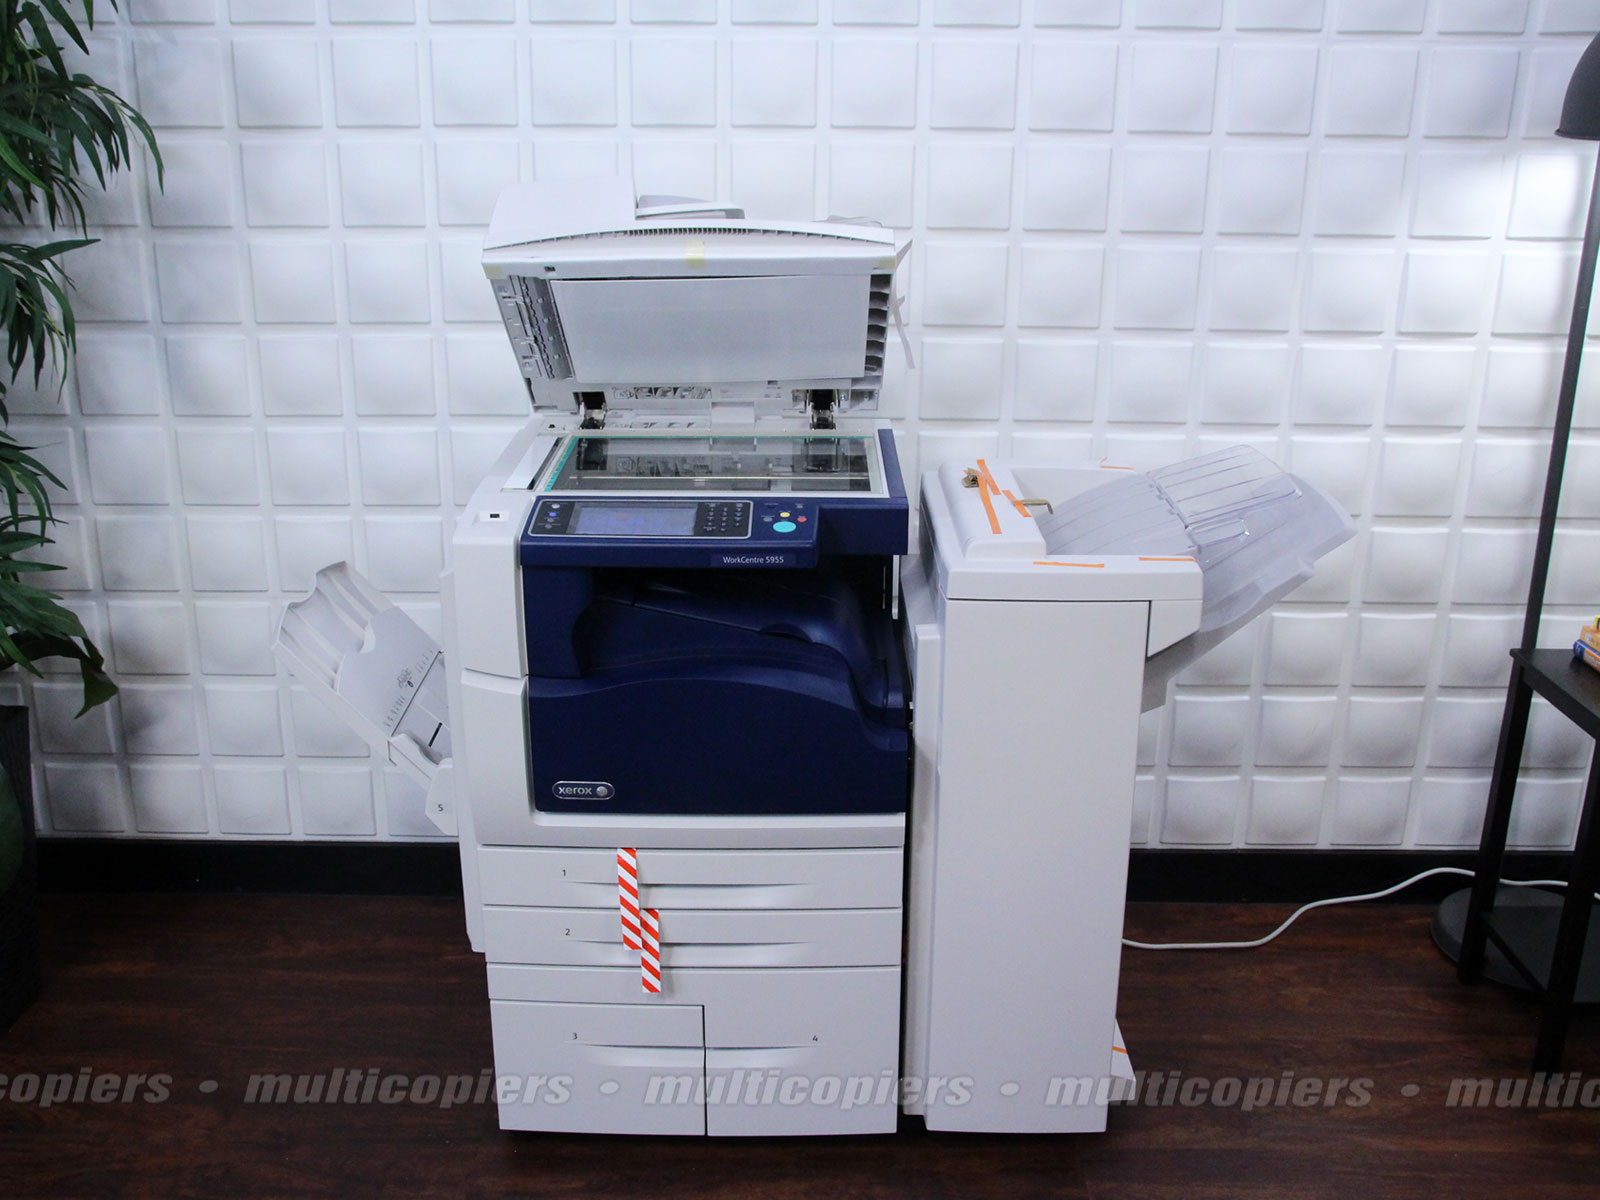 officejet 4500 g510n-z scan legal document